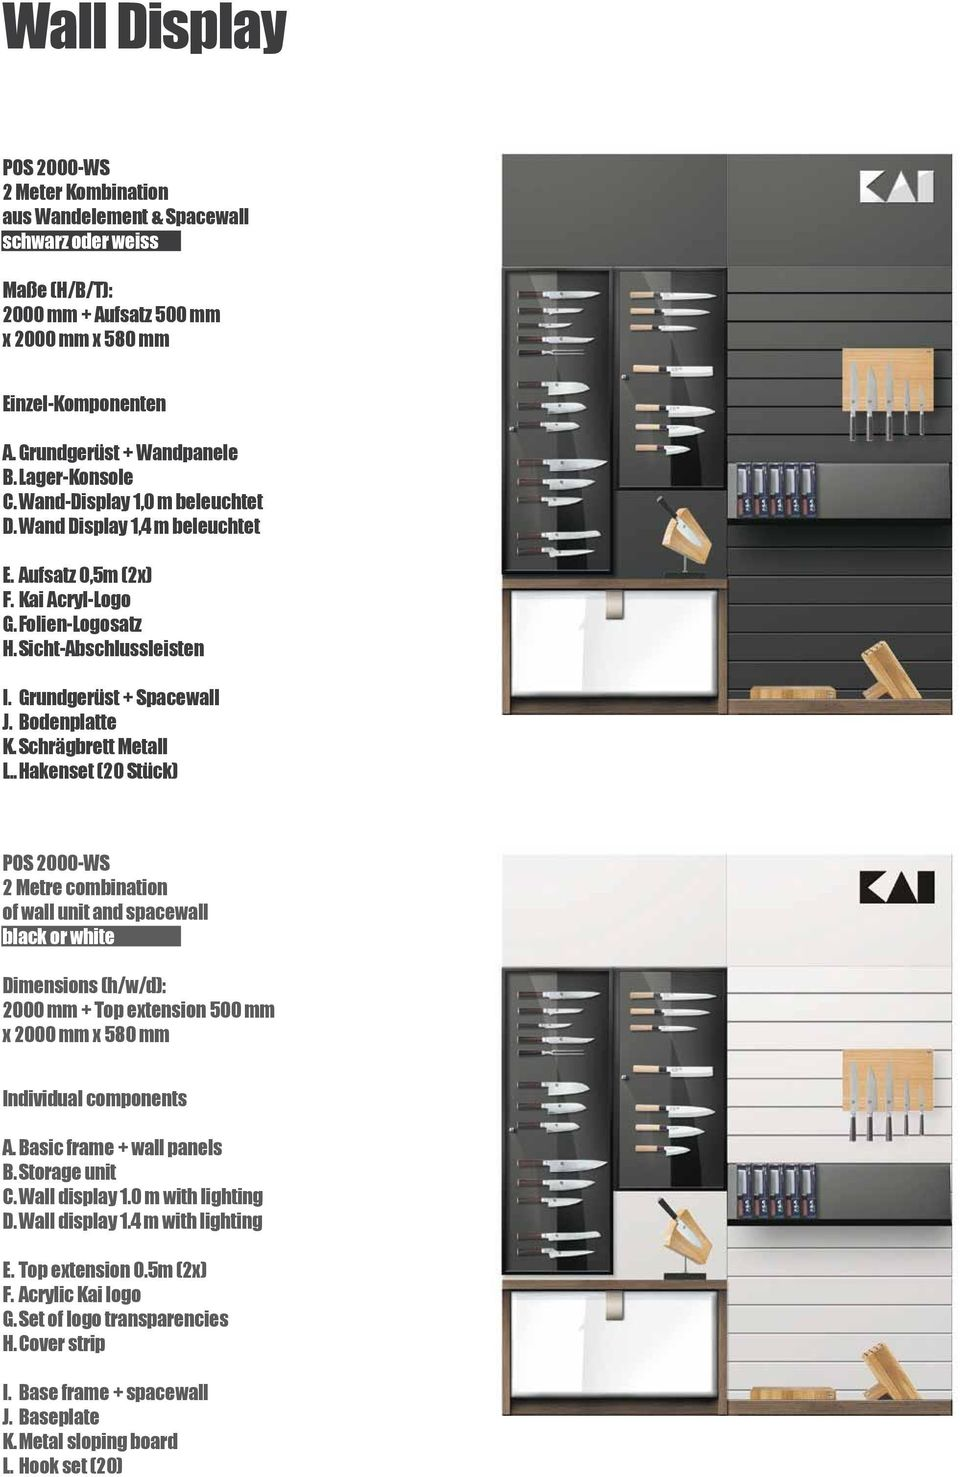 Schrägbrett Metall L.. Hakenset (20 Stück) POS 2000-WS 2 Metre combination of wall unit and spacewall black or white 2000 mm + Top extension 500 mm x 2000 mm x 580 mm A. Basic frame + wall panels B.